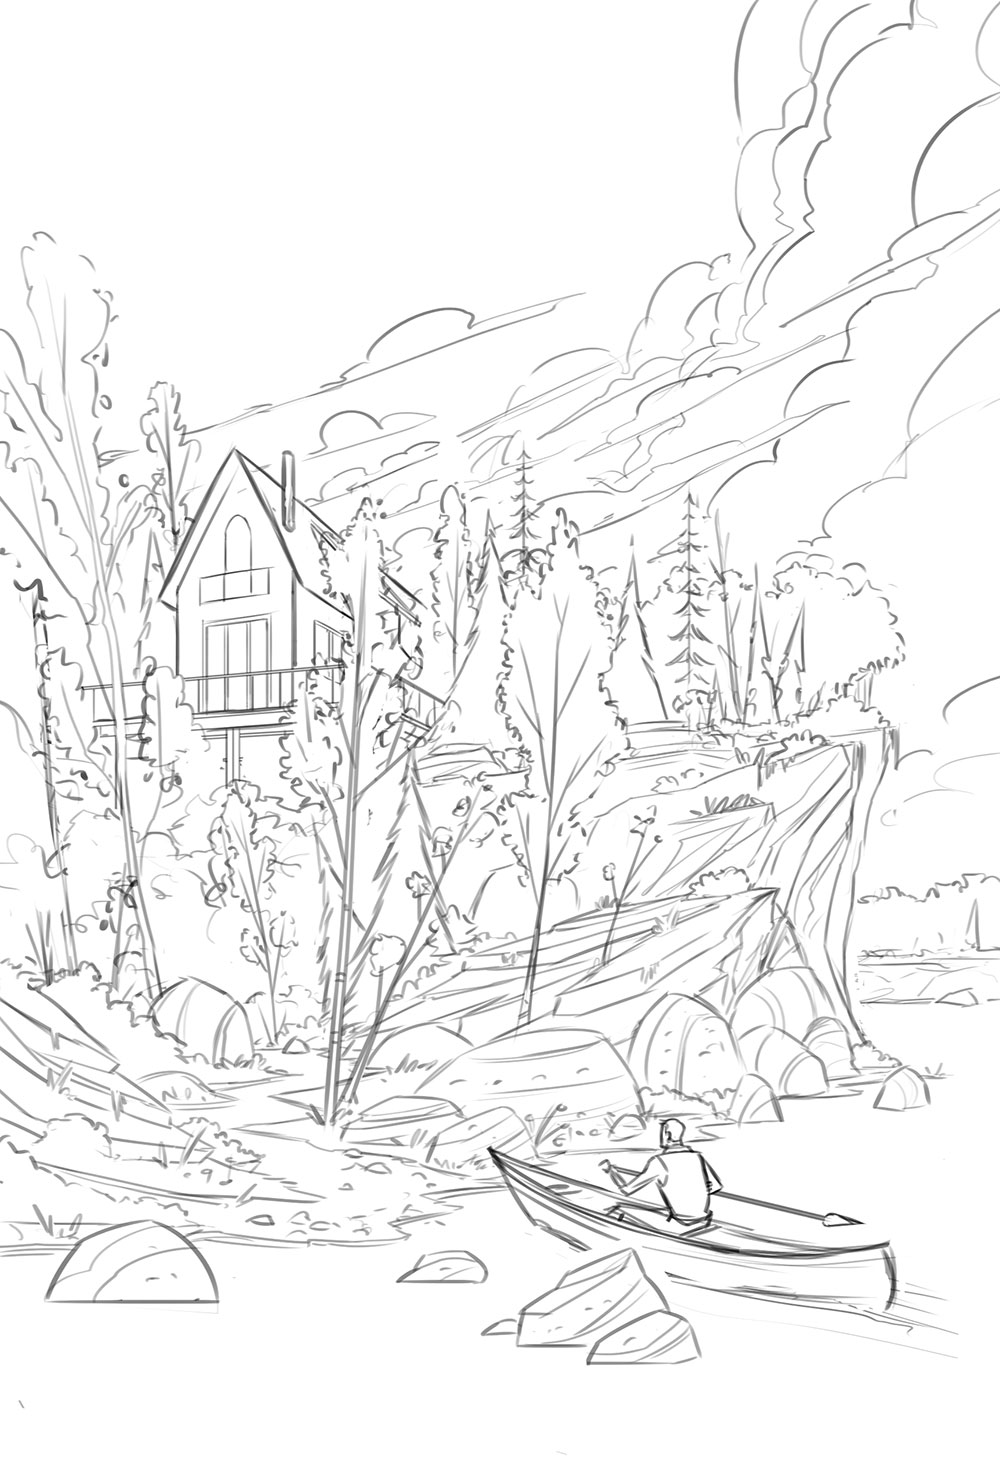 The Cabin · Sketch